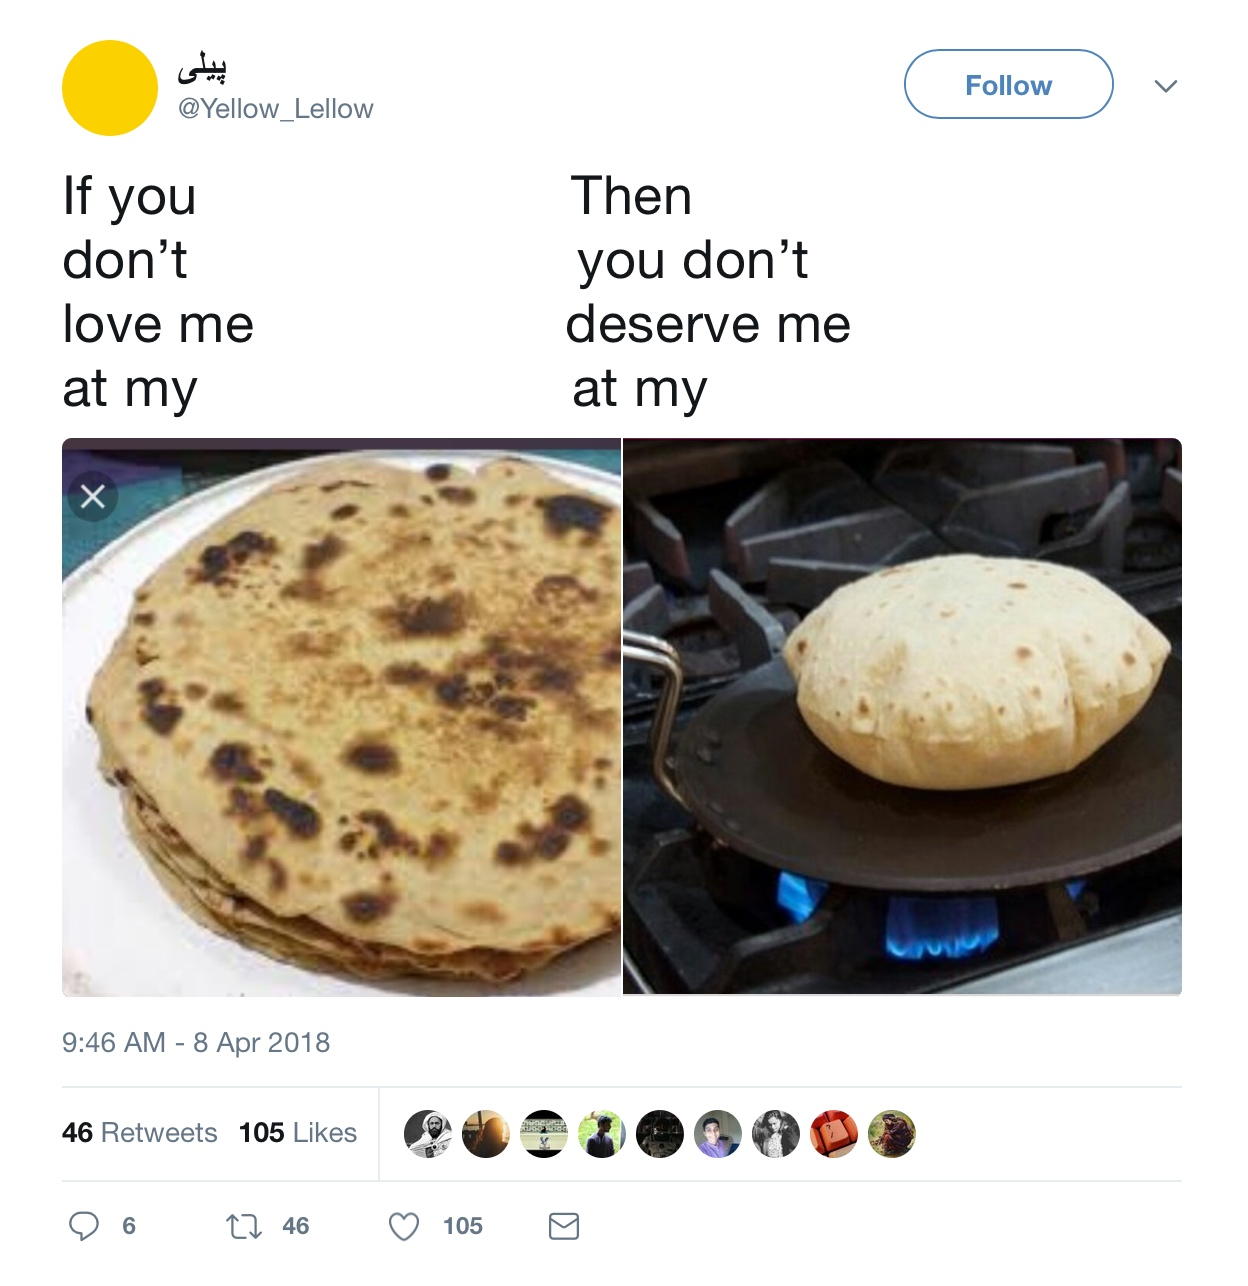 """- Over the last few years, I have been researching """"roti"""", a round flatbread that originated in the Indian subcontinent made from stoneground wheat flour, traditionally known as atta, and mixed with water to create dough. Roti is often a central food item in many South Asian households, but it has taken journeys beyond South Asia through the diaspora. I've found that """"roti"""" functions as resource for reinforcing desi domesticity, femininity, and the reproduction of heteronormative patriarchy. I look forward to sharing this work as it develops."""